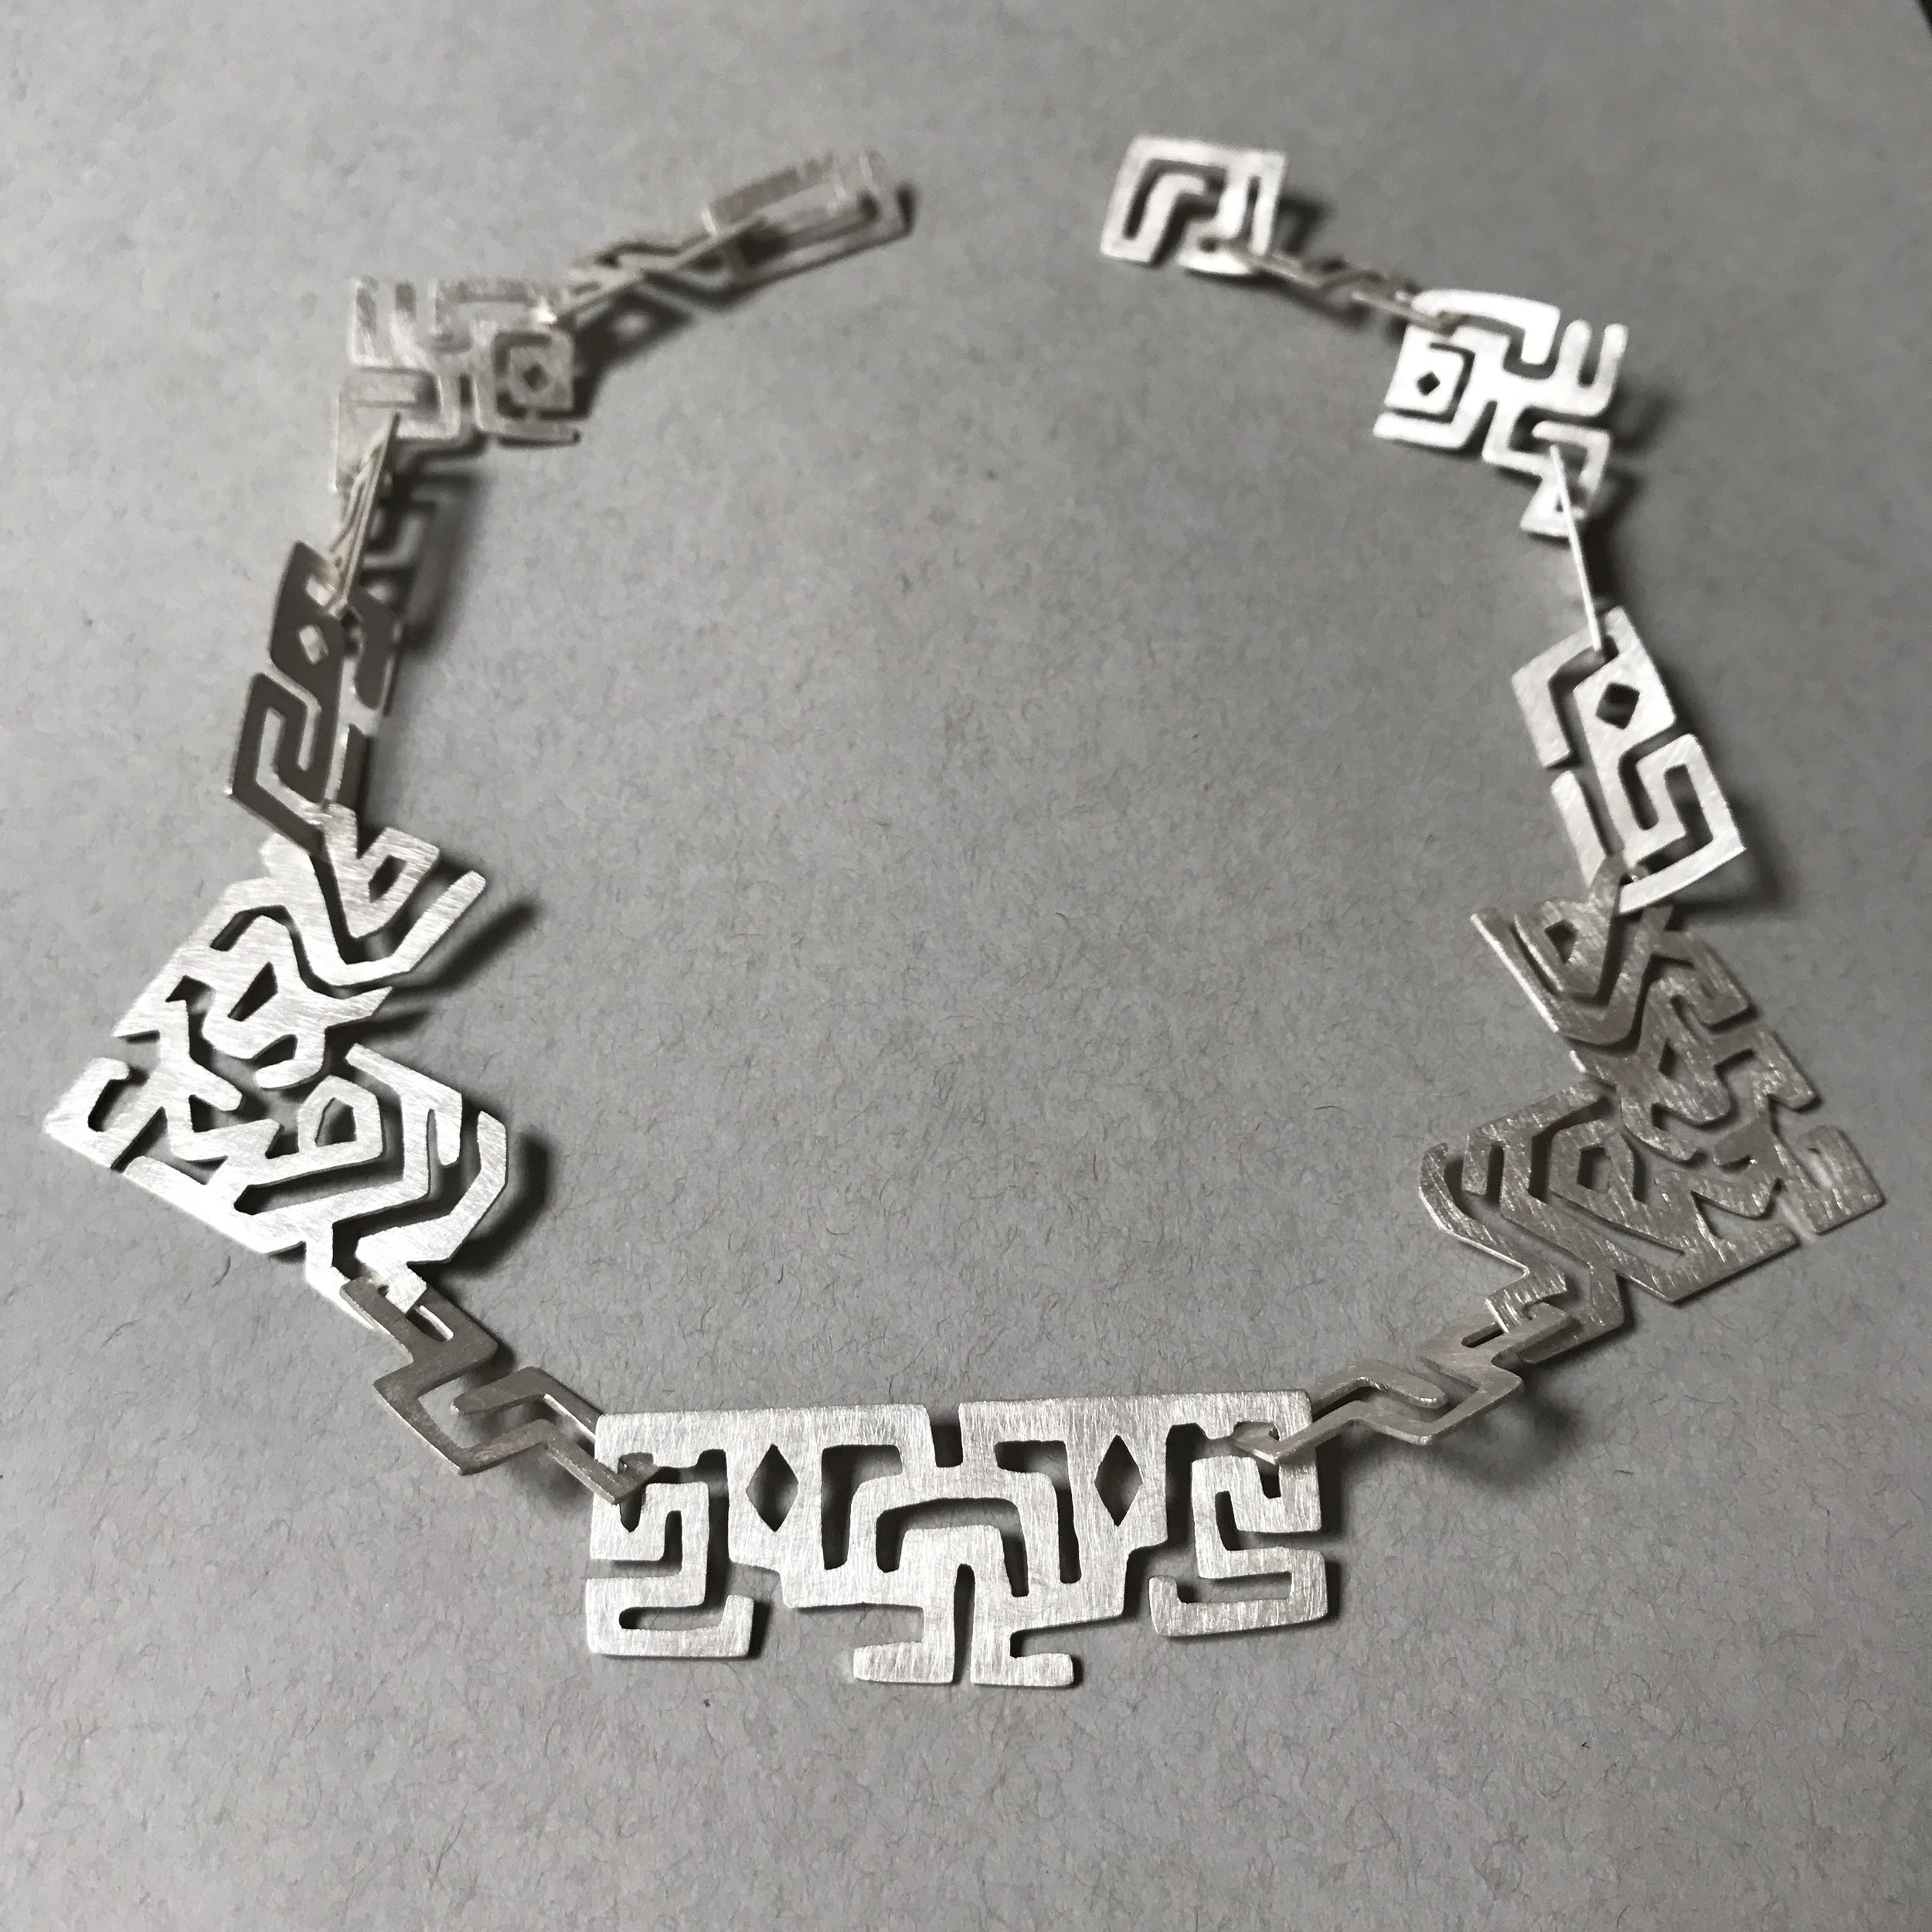 "Maze - Sterling Silver, 2016We are born into this maze called life, and begin to move around, driven by the necessity to survive and the desire to explore. Along the way we take wrong turns, hit dead ends and almost always end up in unexpected places.I believe a heightened awareness of our journey is what allows us to have appreciation and wisdom. With a sense of enlightenment we are able to realize that in the end, all those ""wrong turns"" were actually simply parts of the puzzle that comprise a beautiful life story."